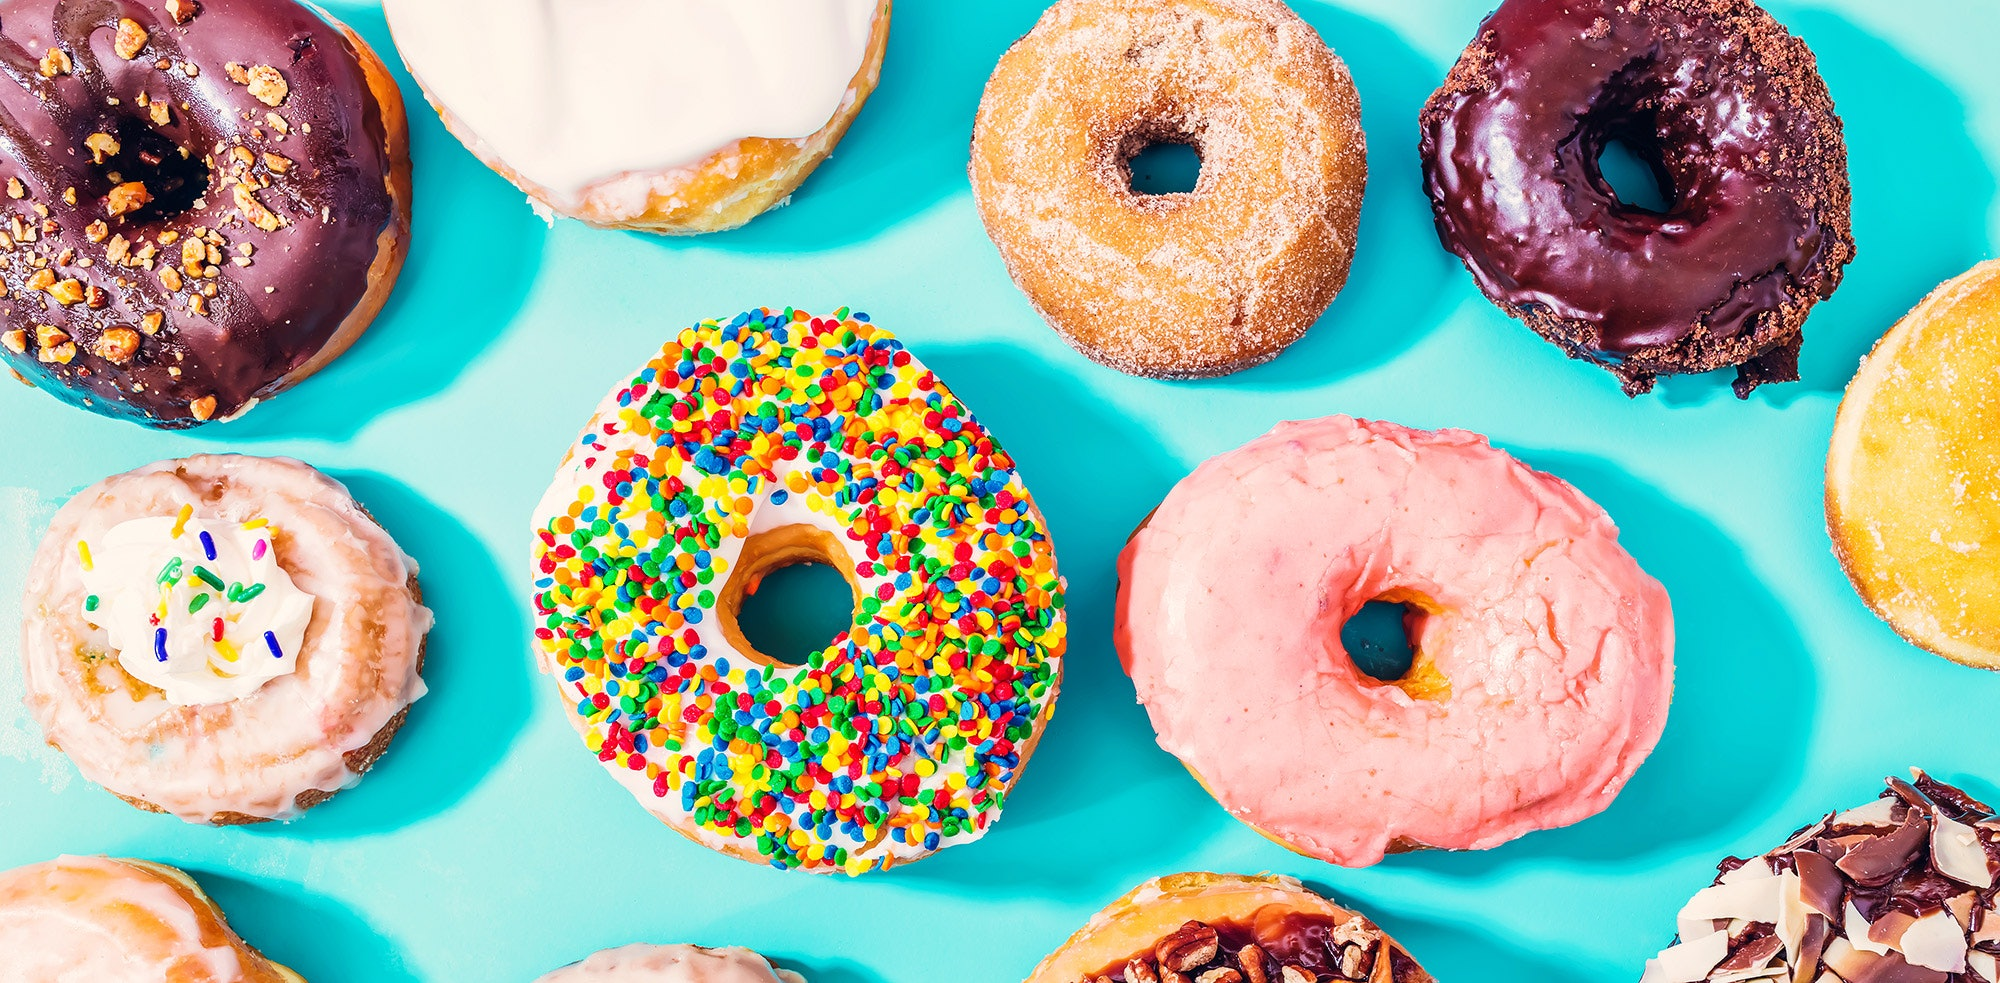 Donuts were created by Dutch immigrants